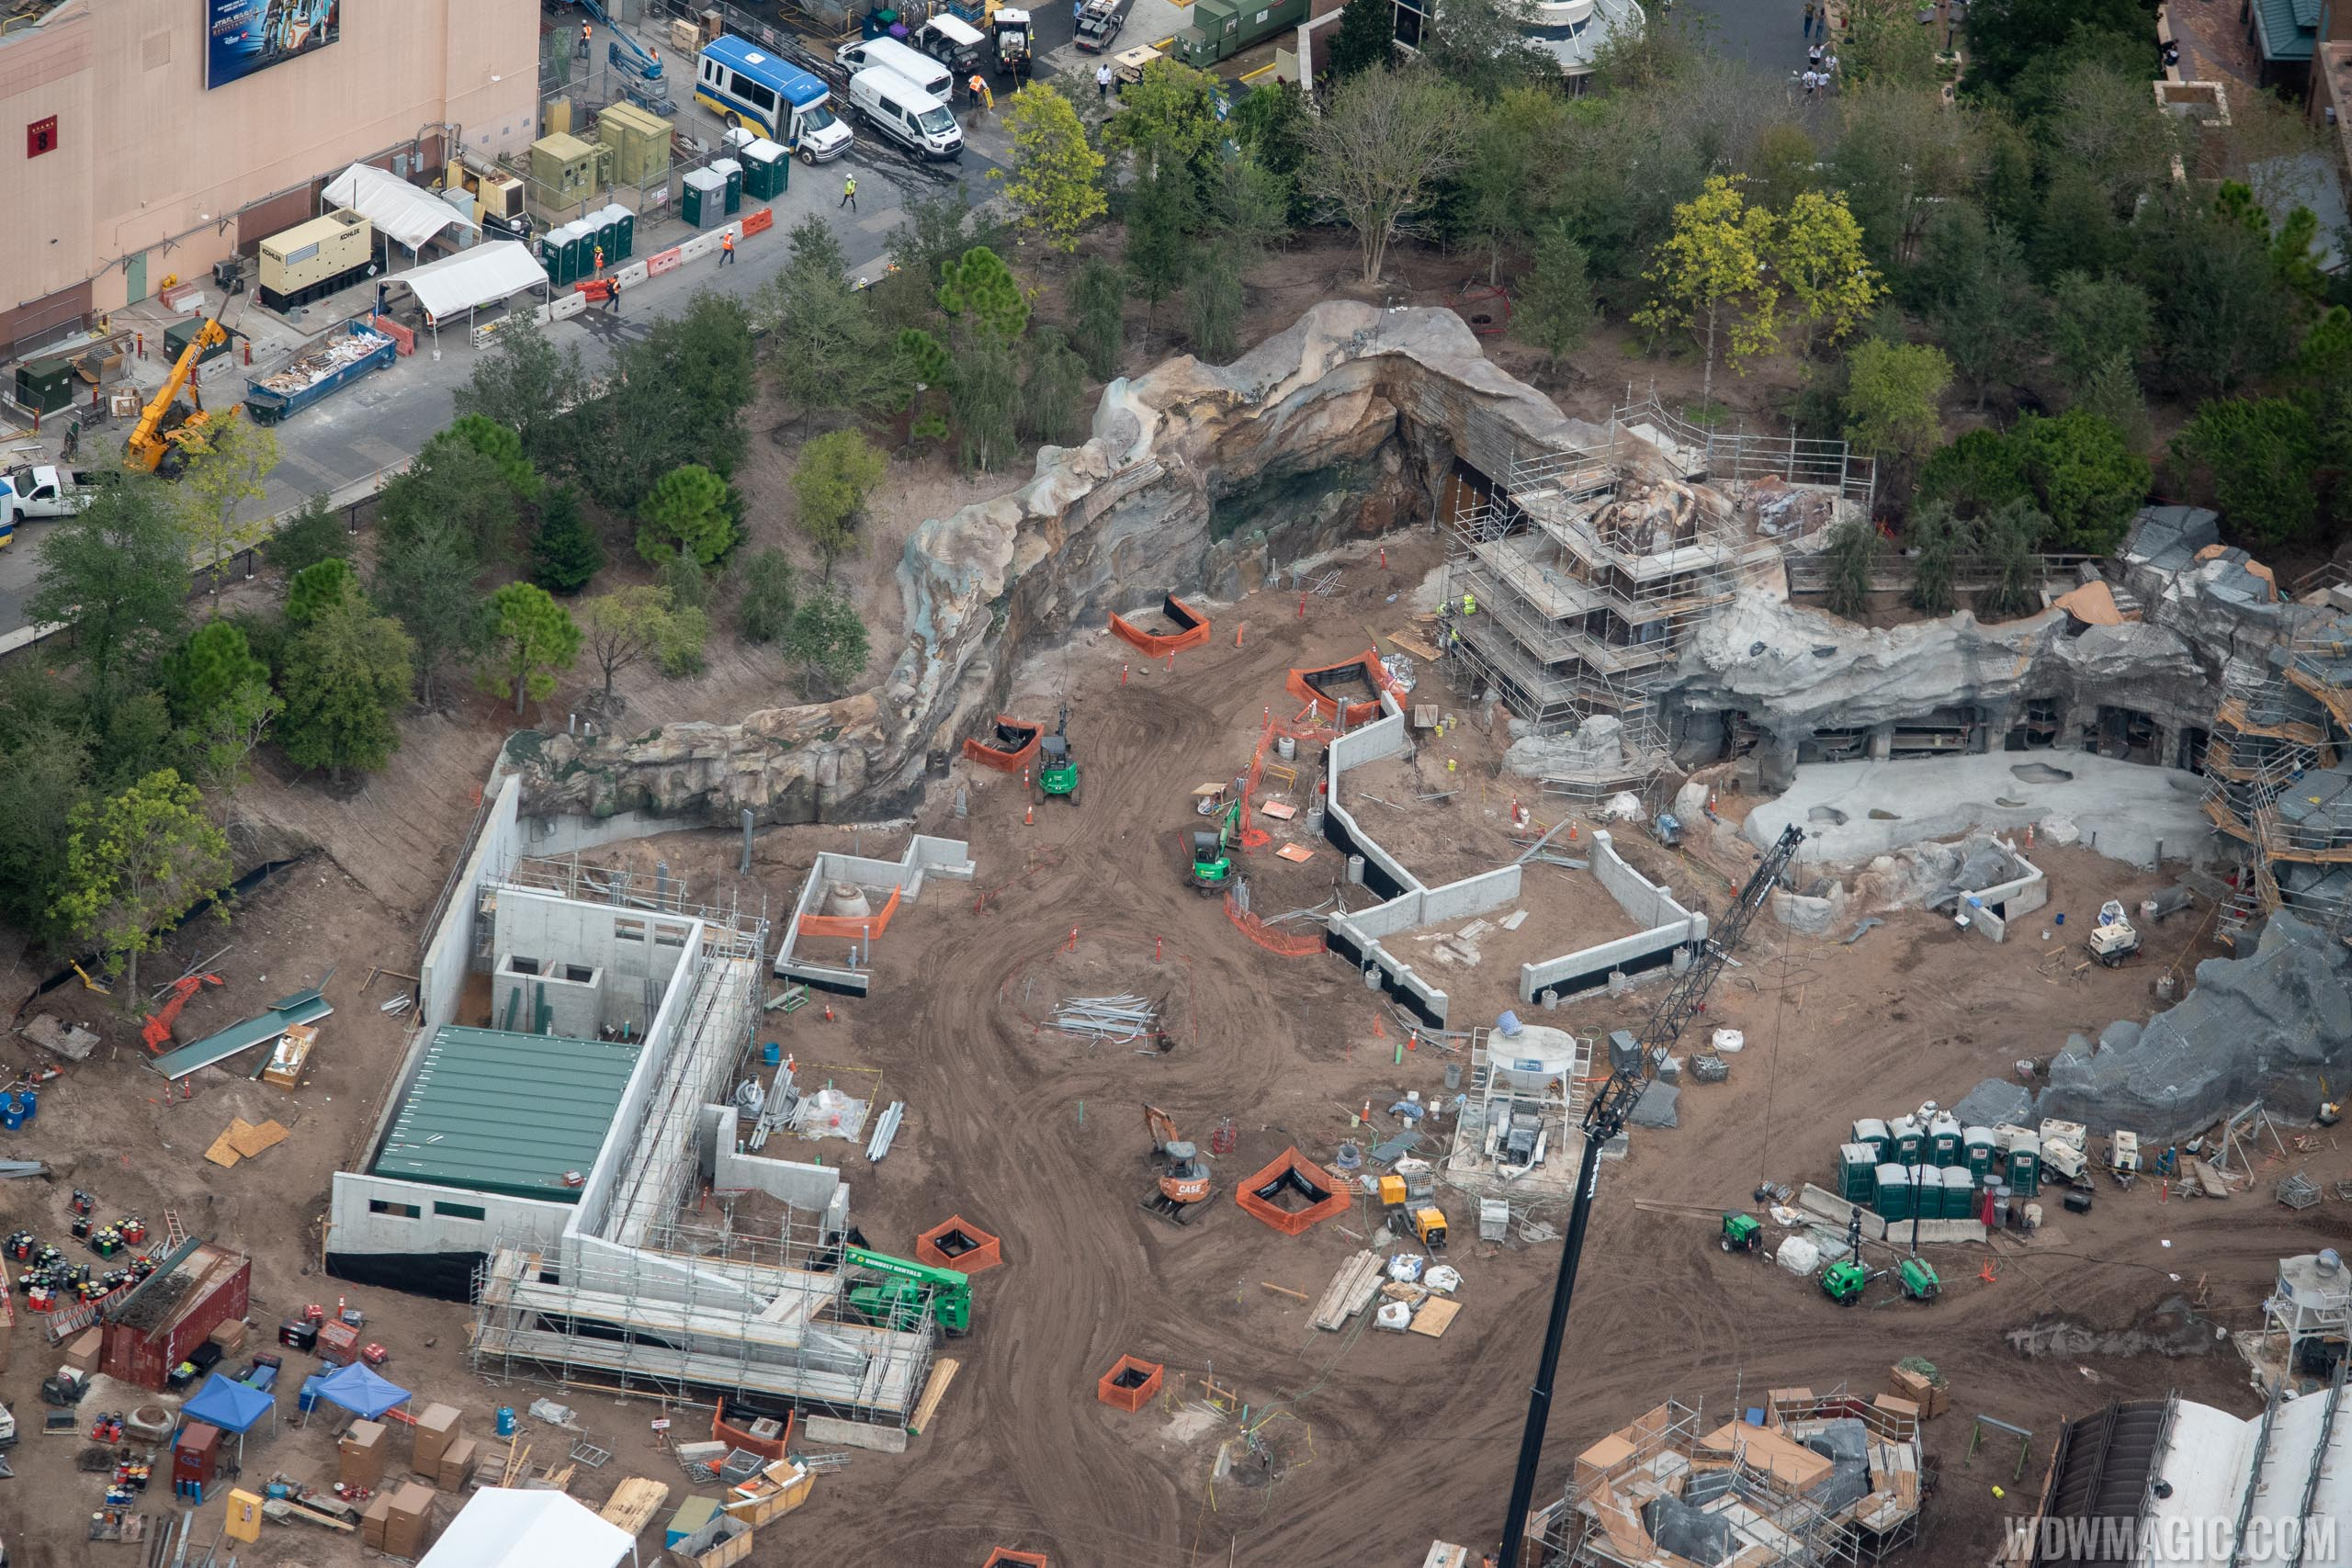 Youll Find Forevertron Behind Sea Of_27 >> Star Wars Galaxy S Edge Aerial Pictures November 2018 Photo 26 Of 27